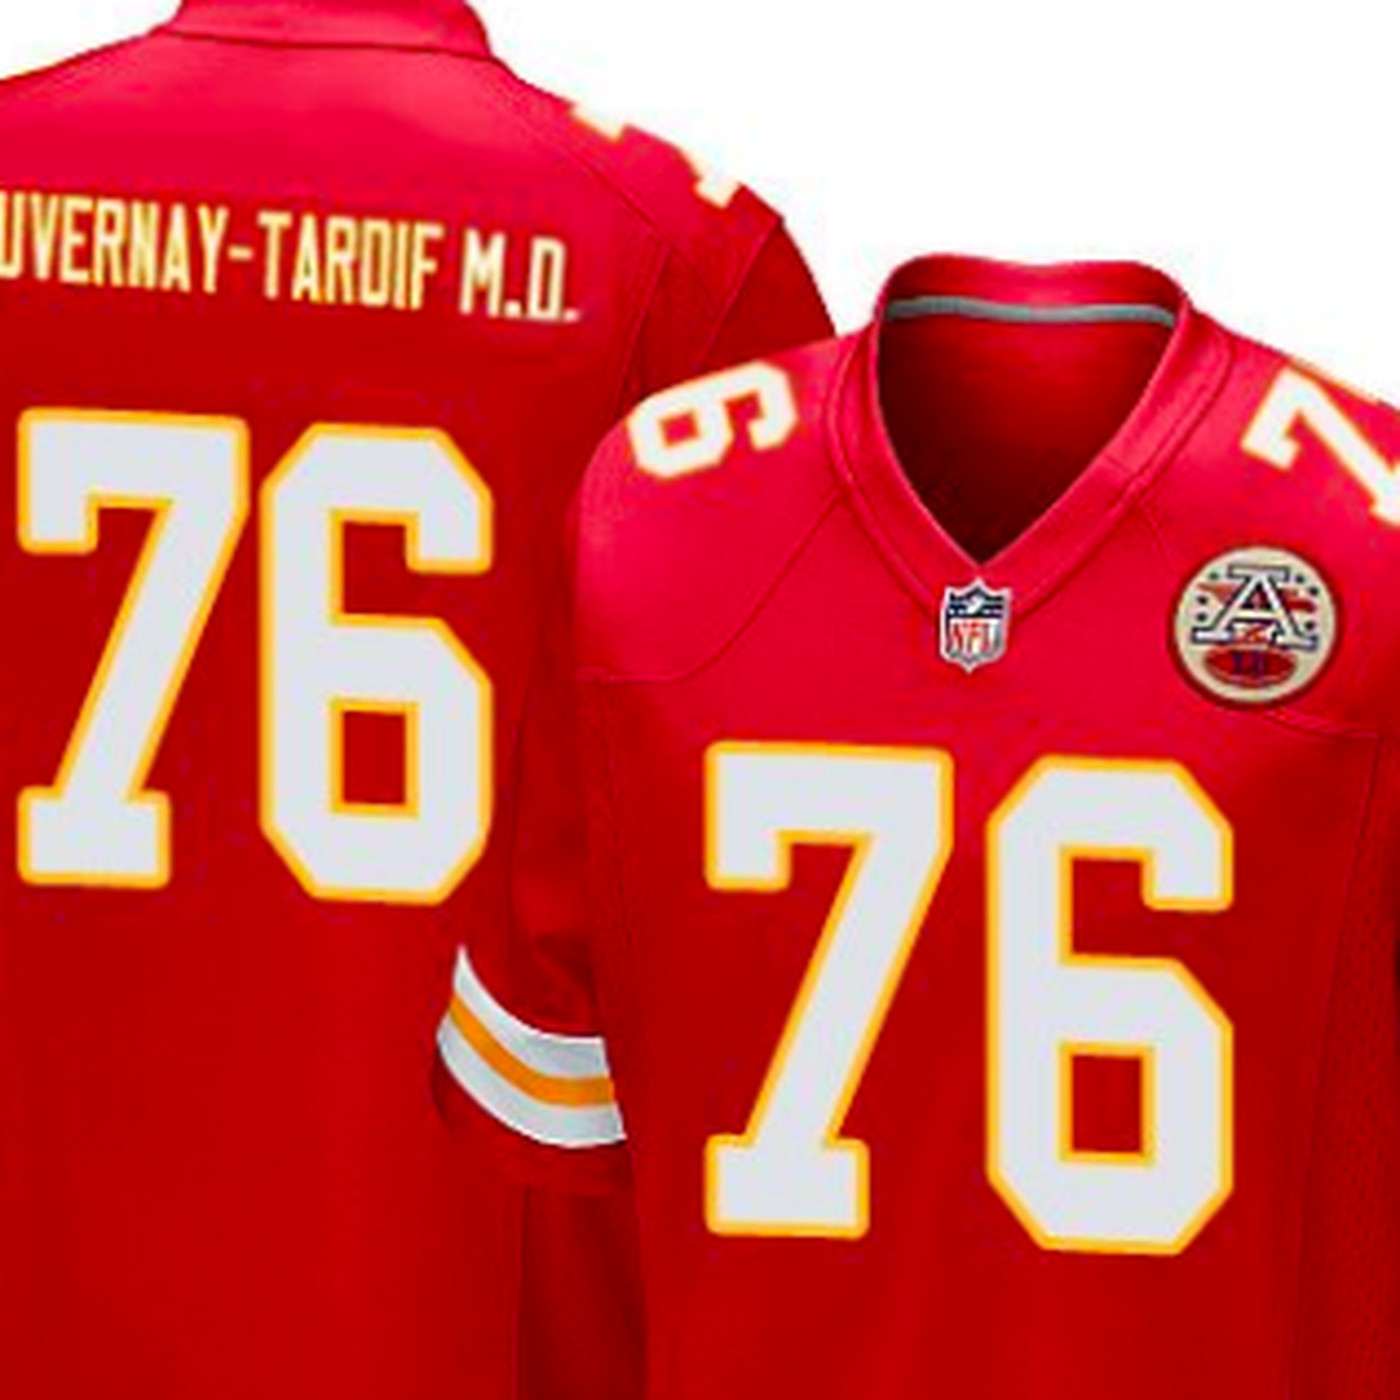 963835c9 Chiefs' Laurent Duvernay-Tardif wants to add 'M.D.' to his jersey ...